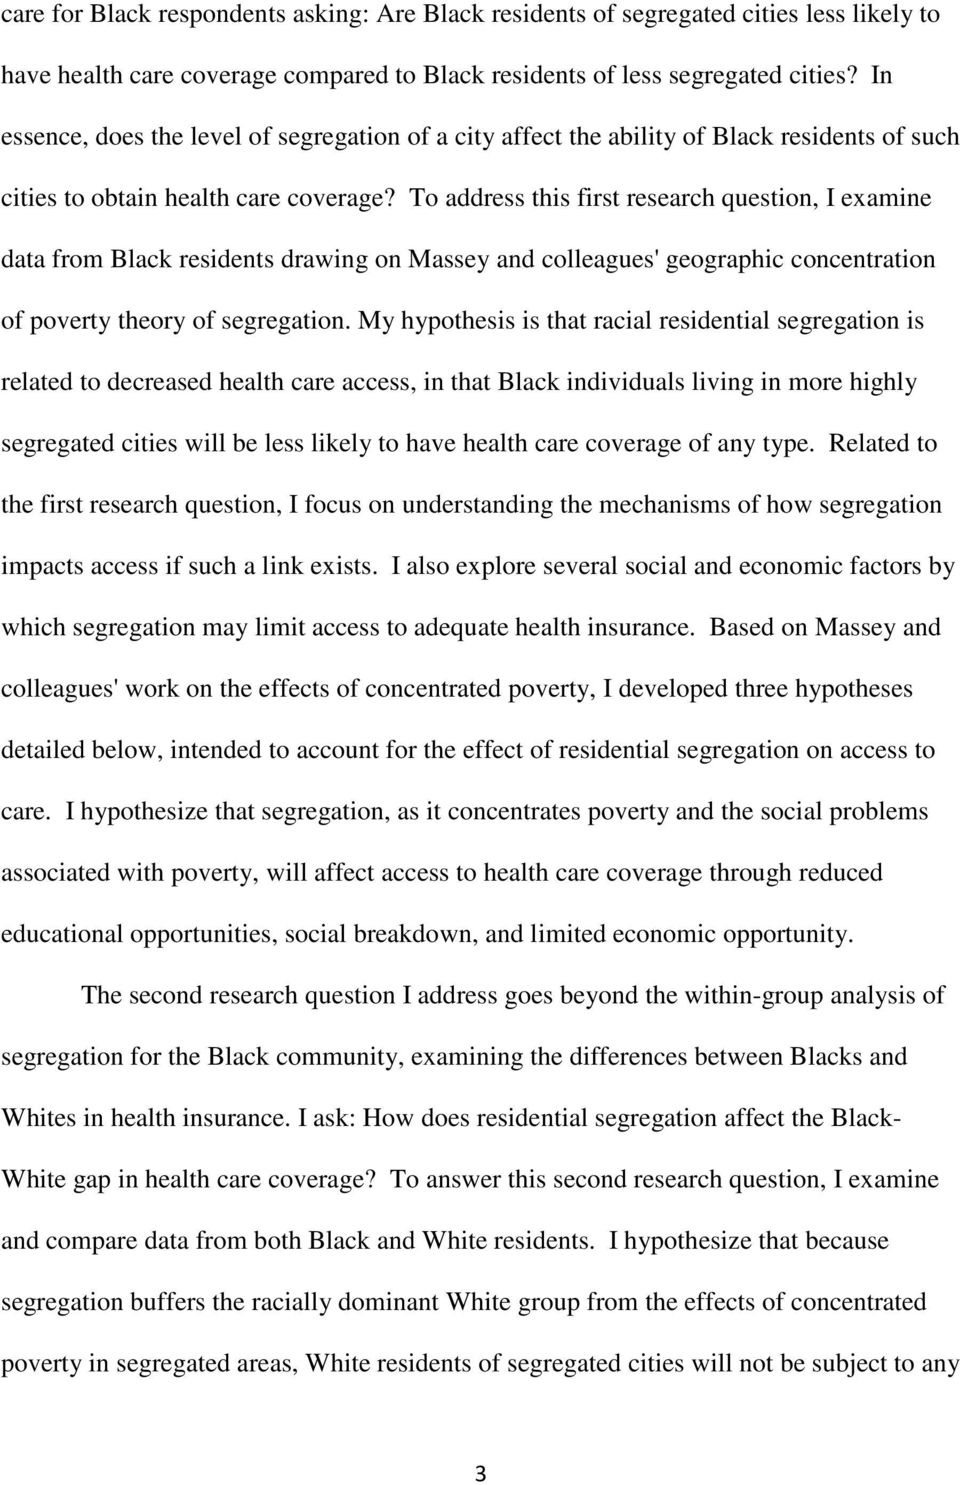 To address this first research question, I examine data from Black residents drawing on Massey and colleagues' geographic concentration of poverty theory of segregation.